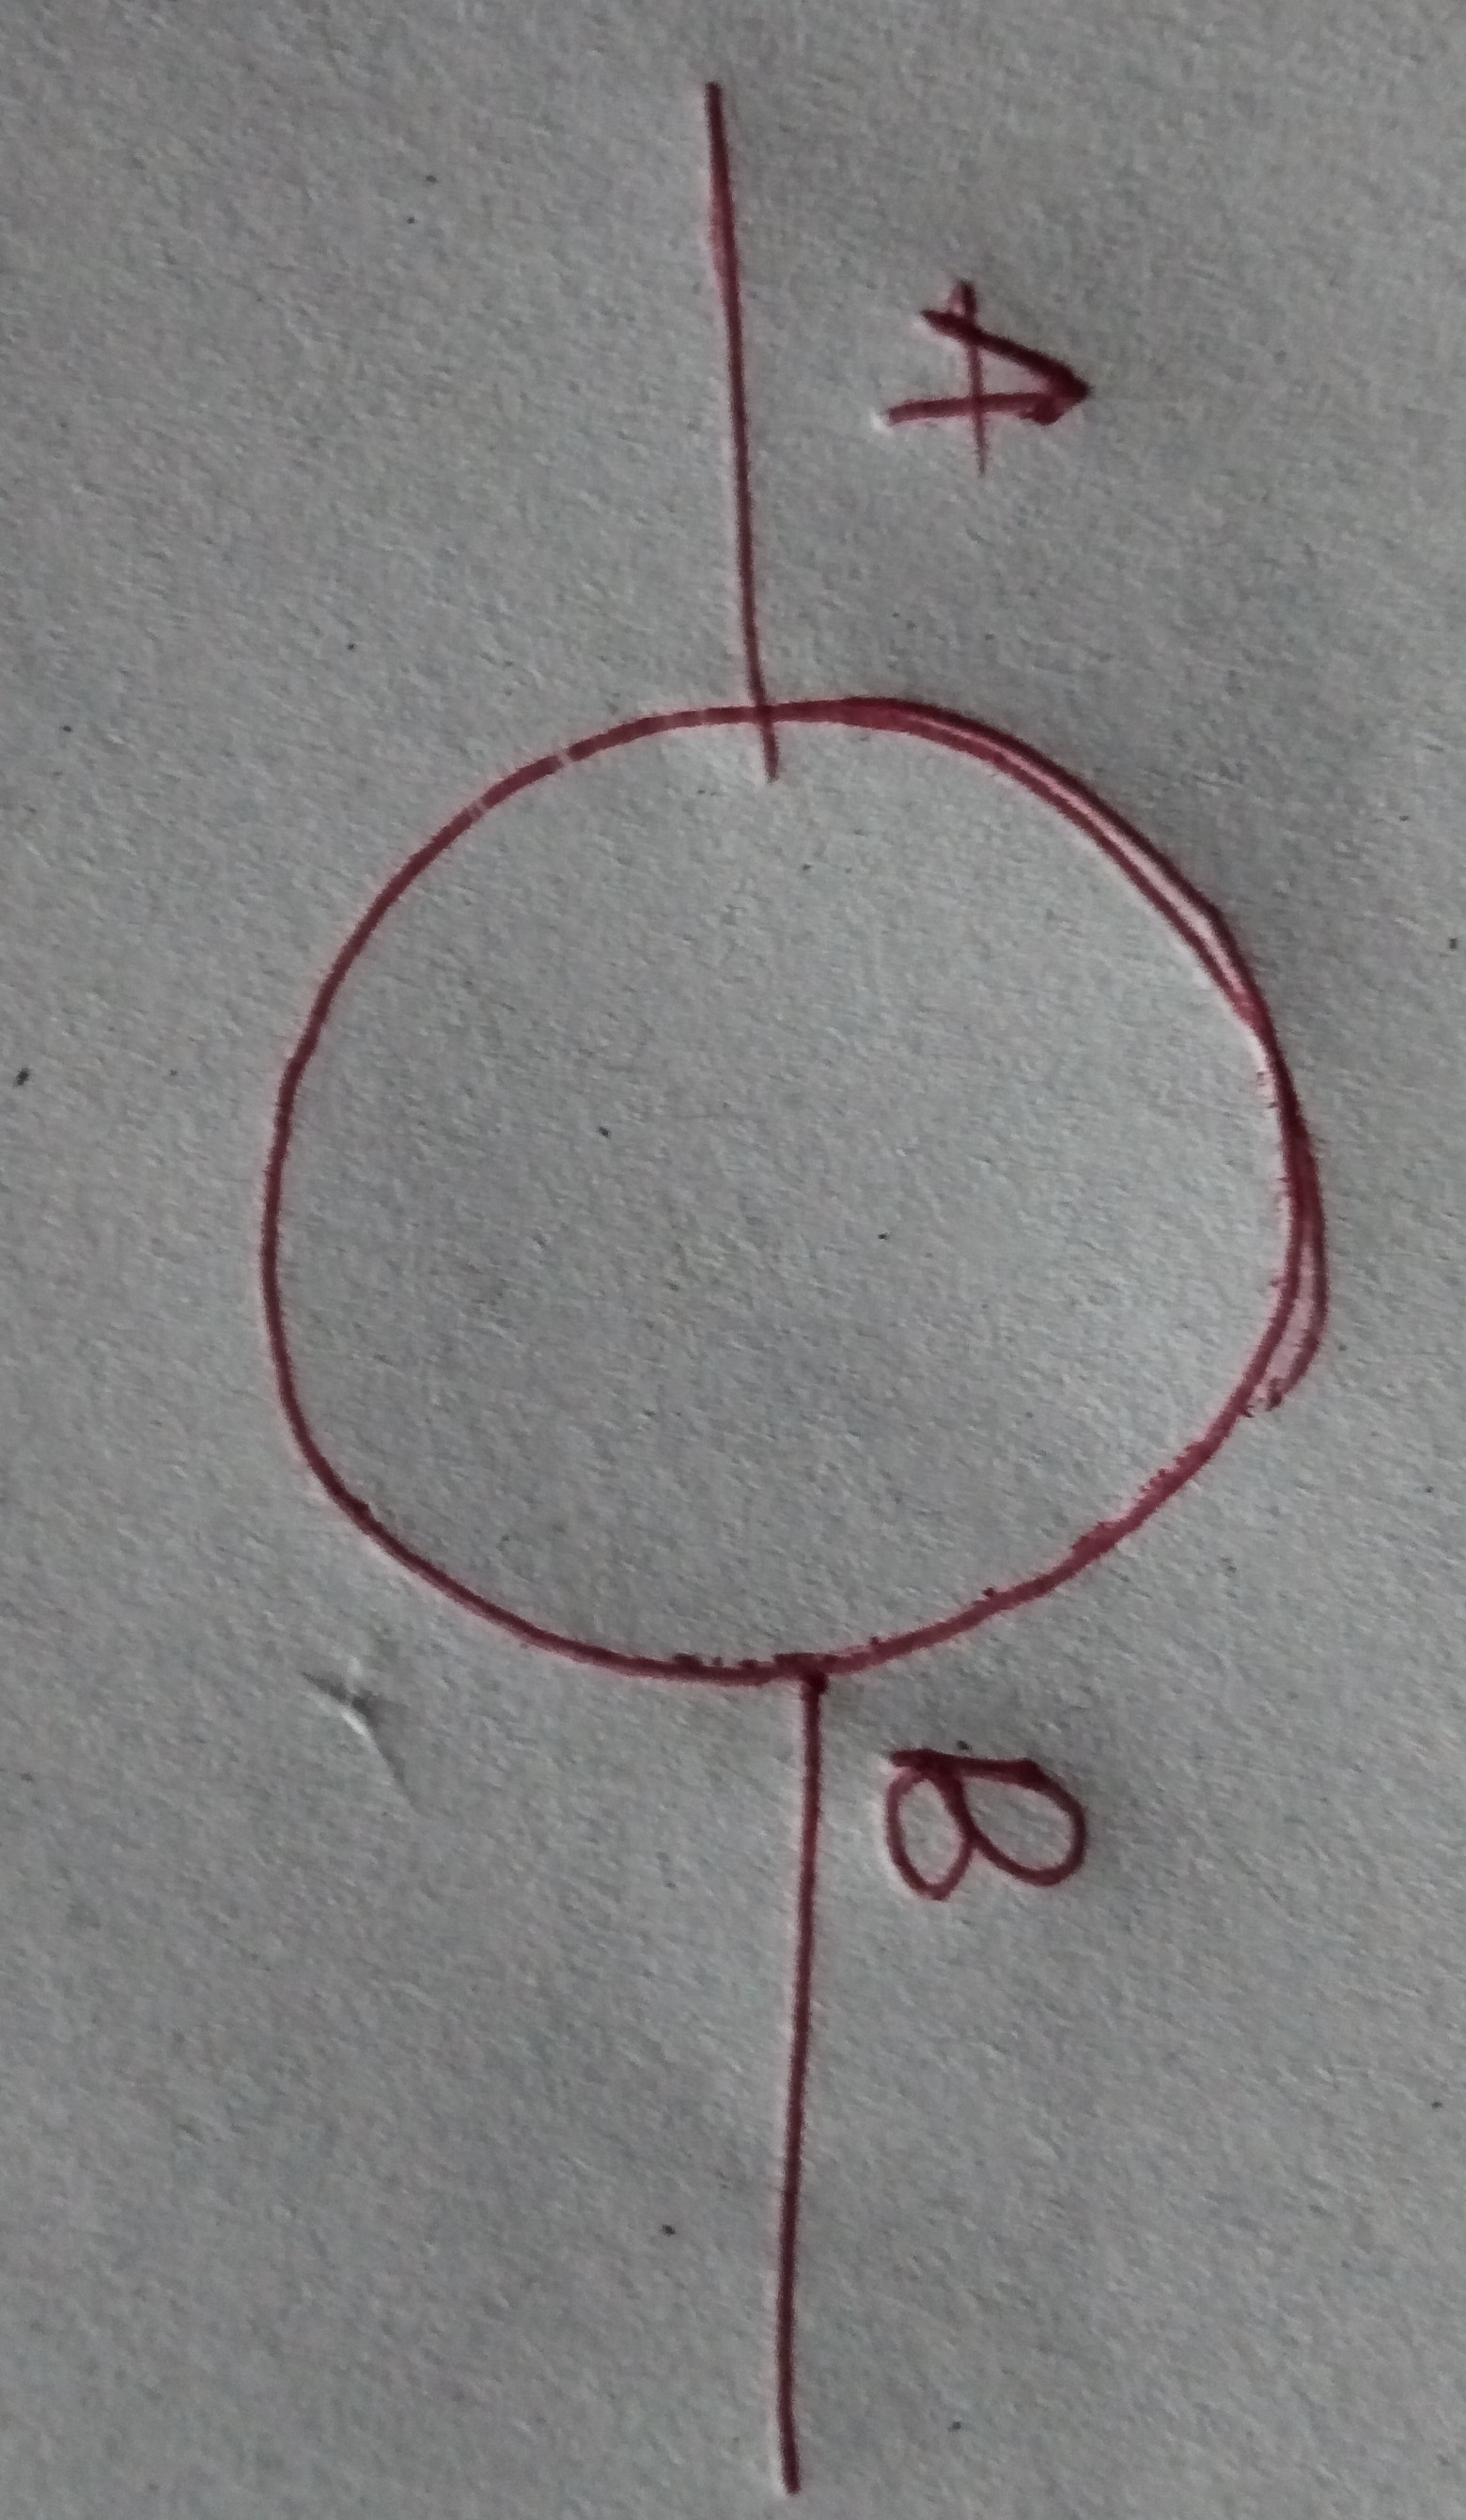 a wire of resistance 8 ohm is bent in the form of circle what is ...